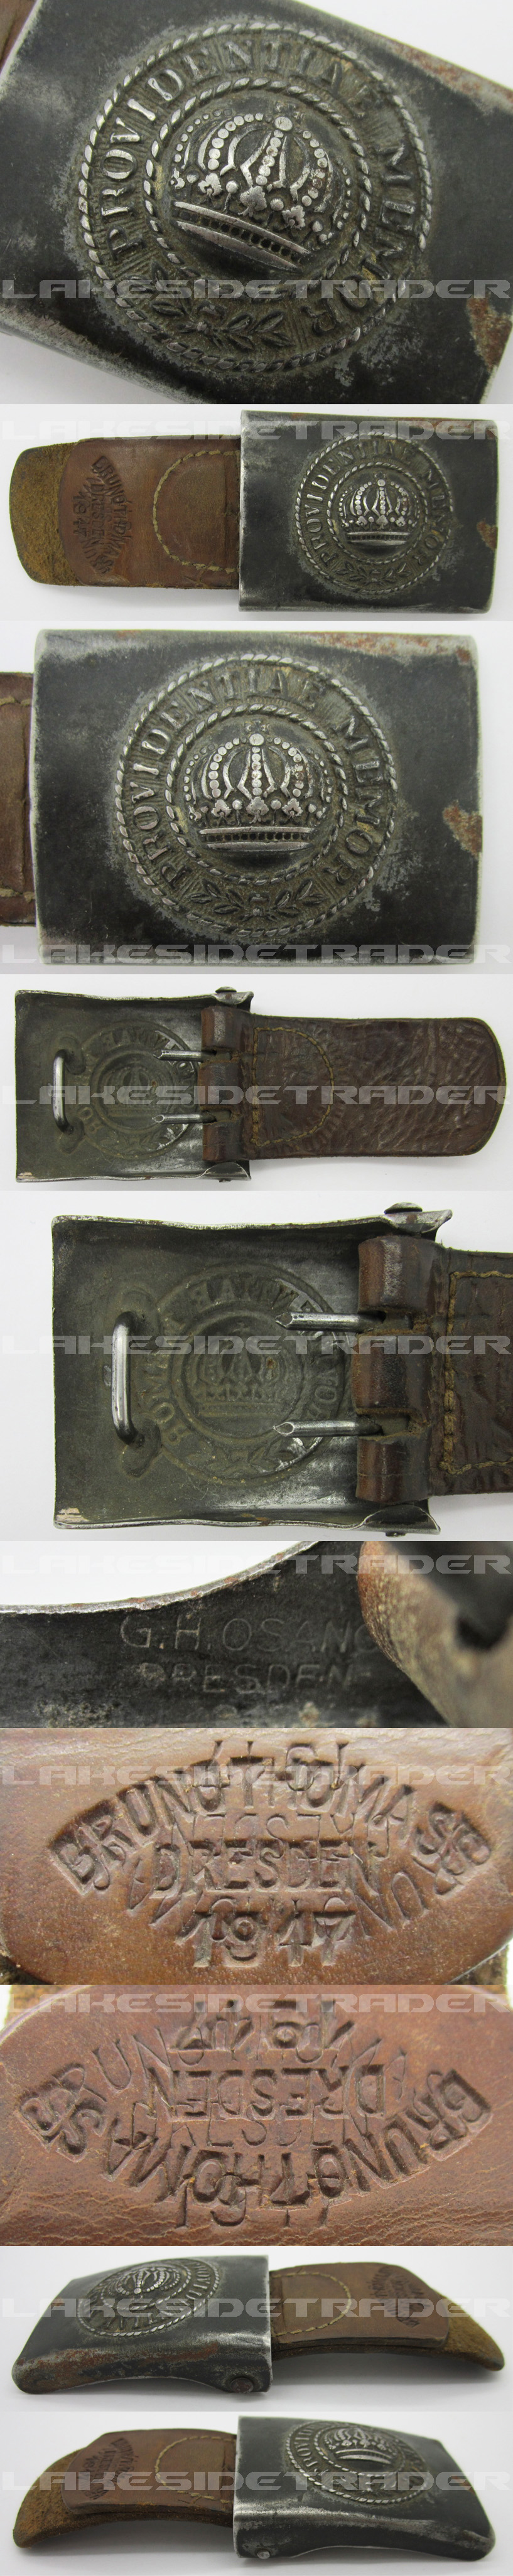 Imperial Saxony Tabbed Army Belt Buckle by Osang 1917